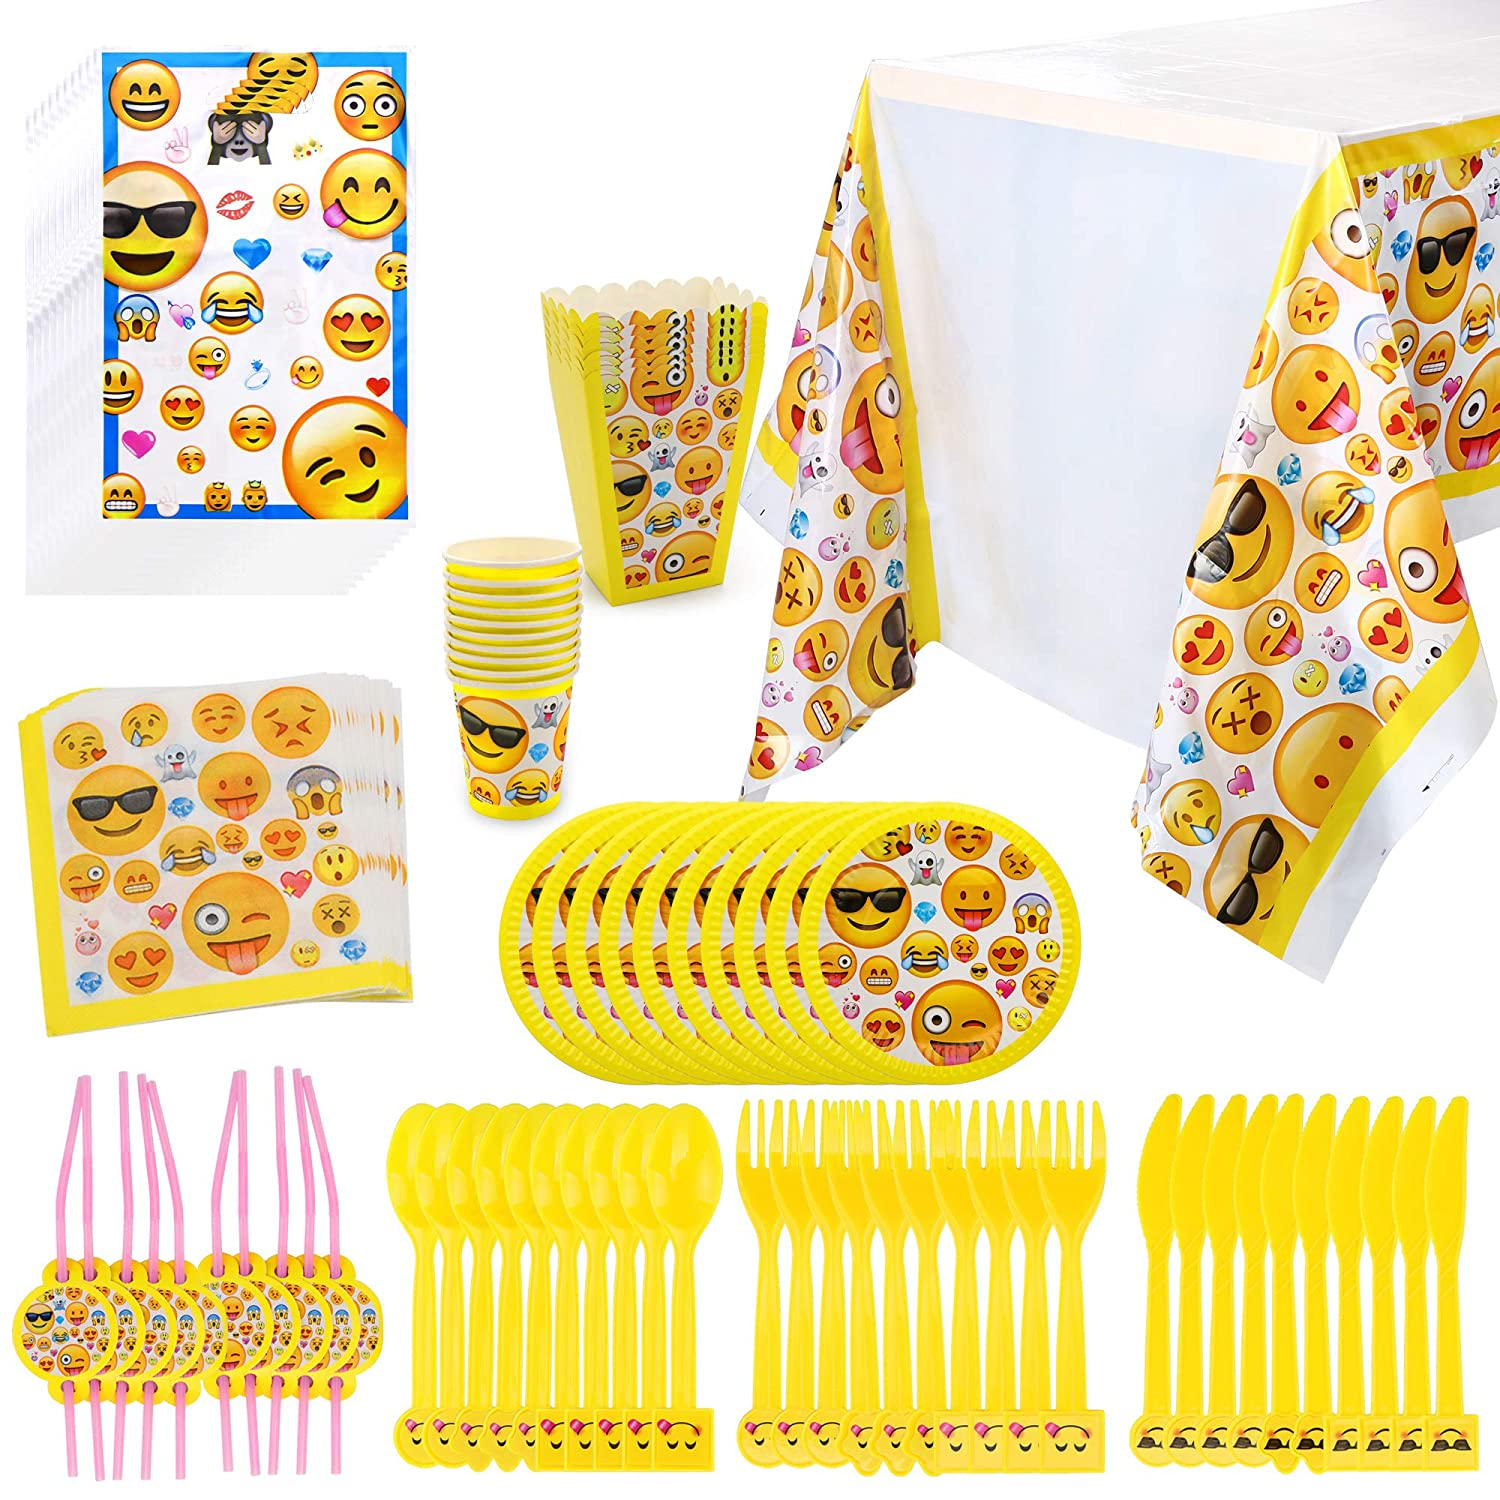 Konsait Emoji Birthday Party Supplies97pcs Faces Jumbo Pack Table Decor Set Paper Plates Disposable Cups Loot Bags Napkins Straws